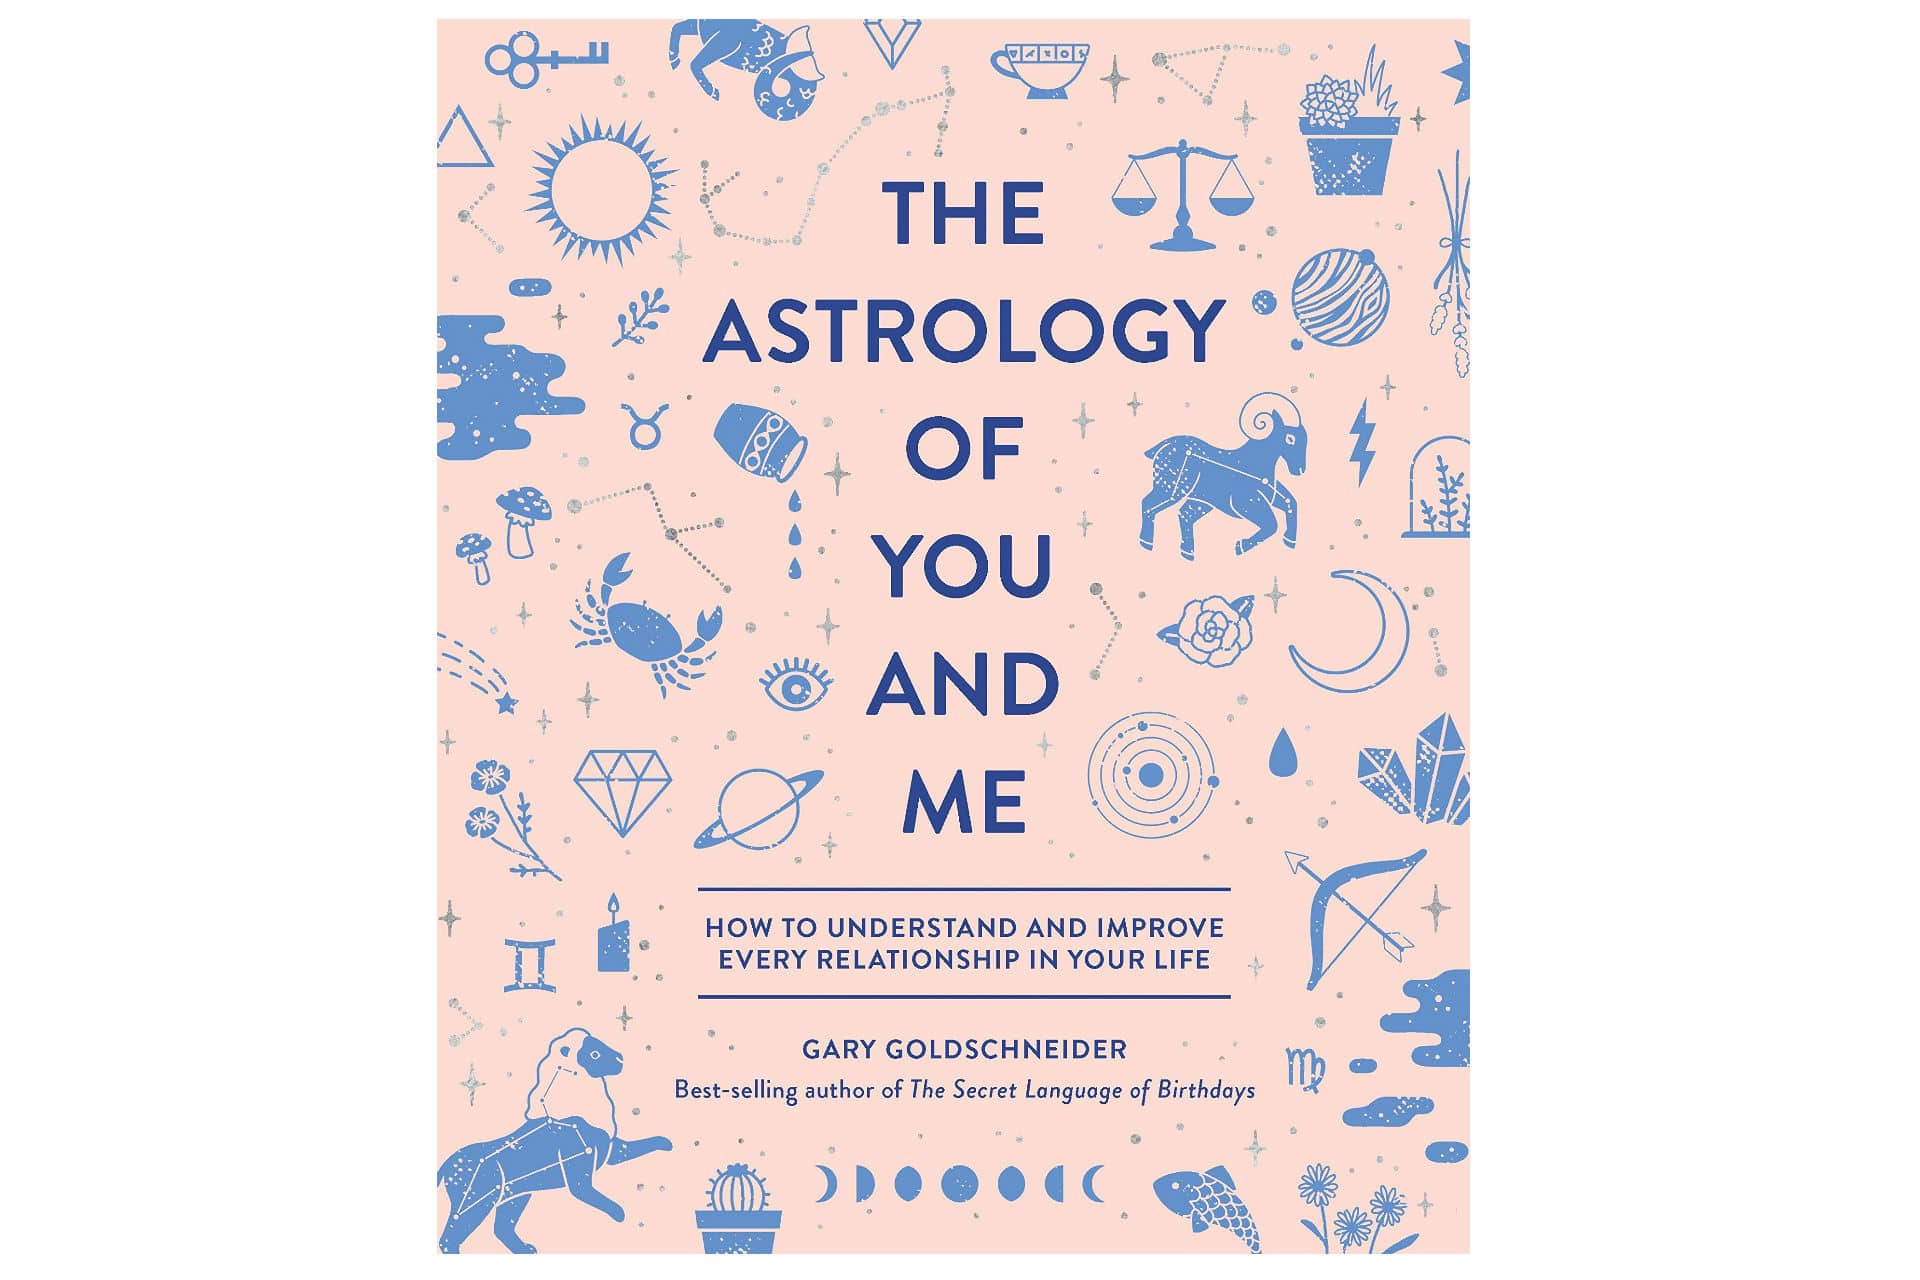 Book that says The astrology of you and me with illustrations of zodiac signs